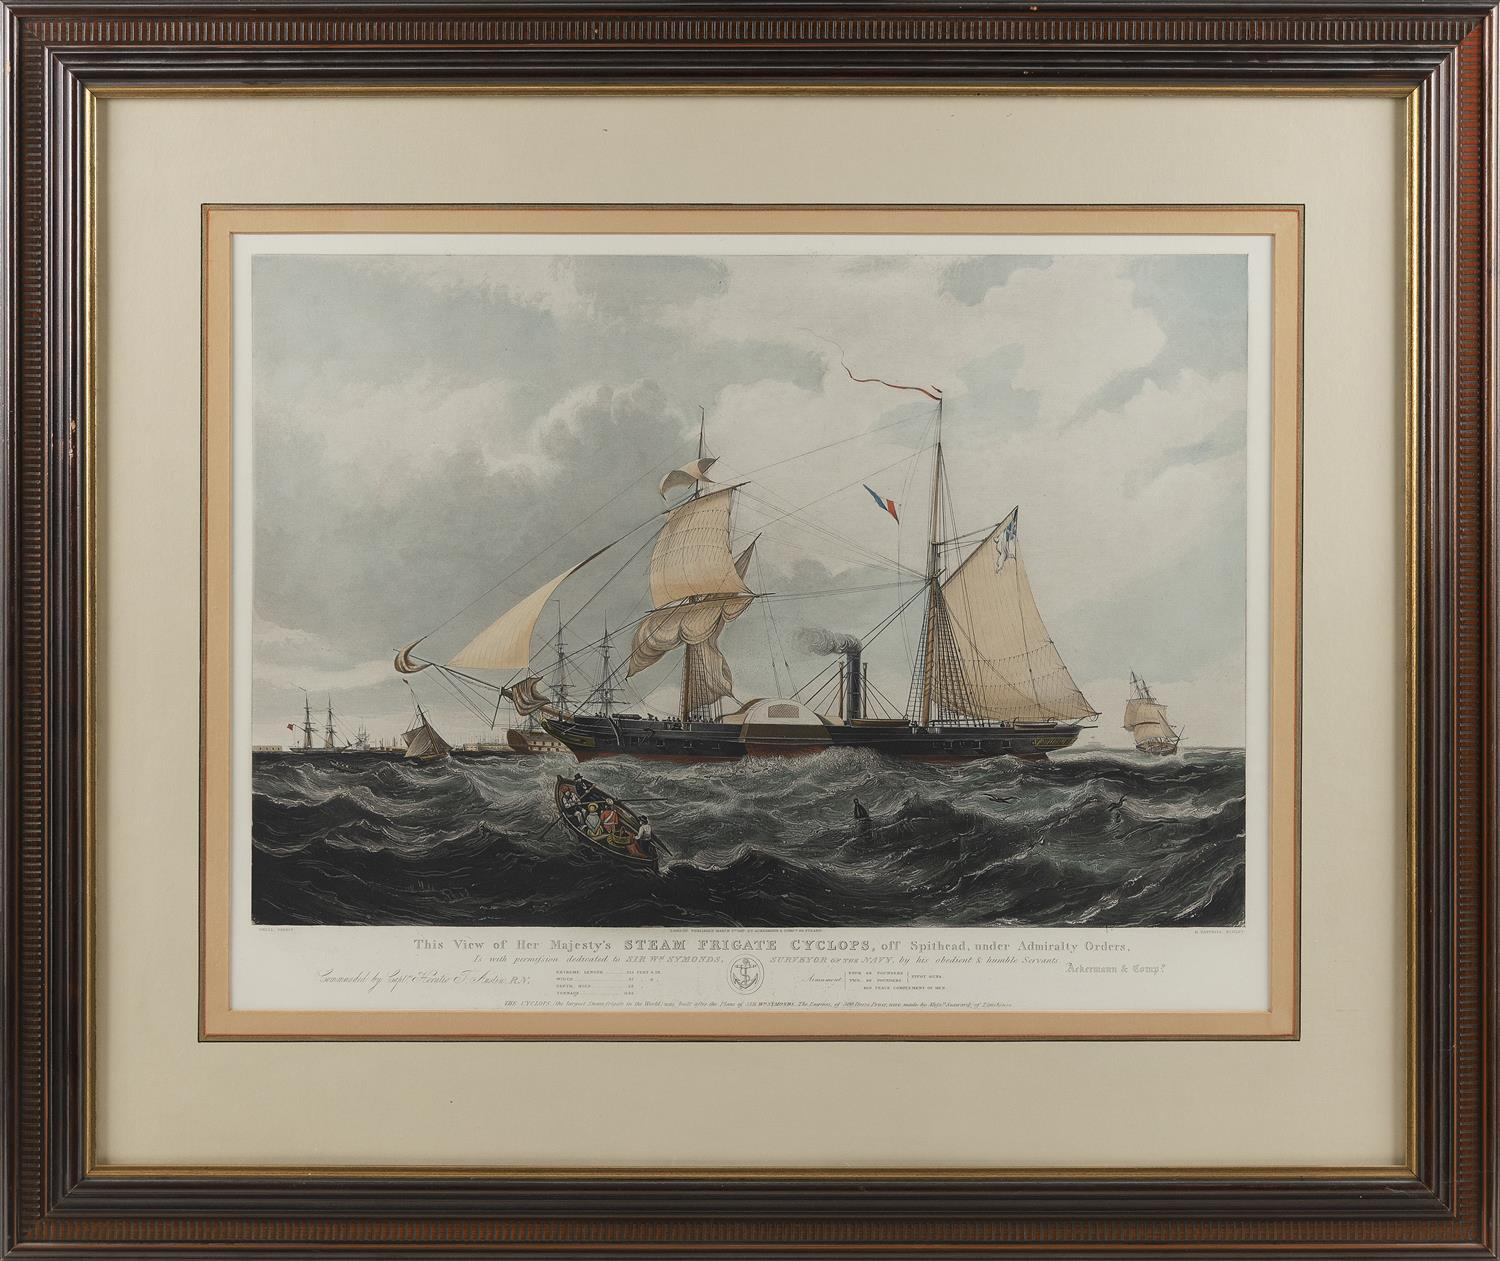 """""""THIS VIEW OF HER MAJESTY'S STEAM FIGATE CYCLOPS"""" AFTER KNELL Hand-colored etching and aquatint by H. Papprill. 18"""" x 25"""" sight. Fra.."""